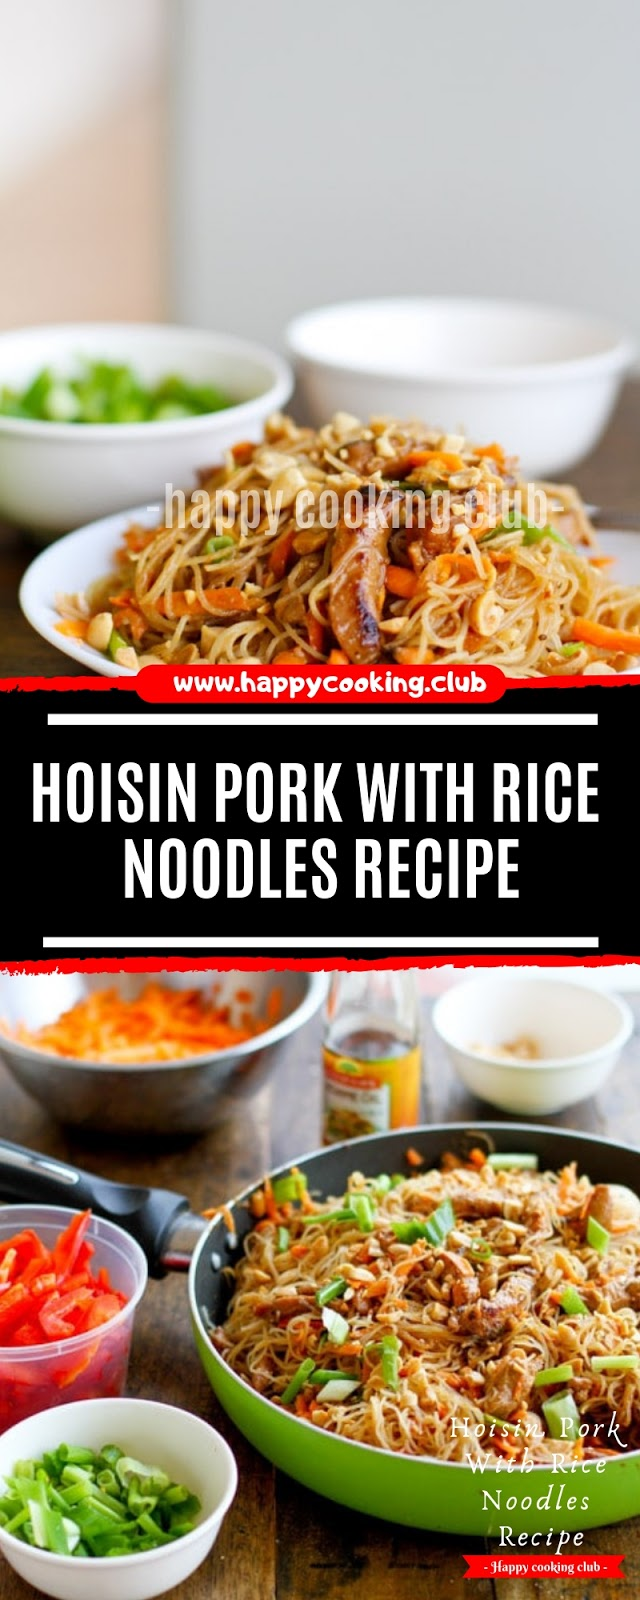 Hoisin Pork With Rice Noodles Recipe